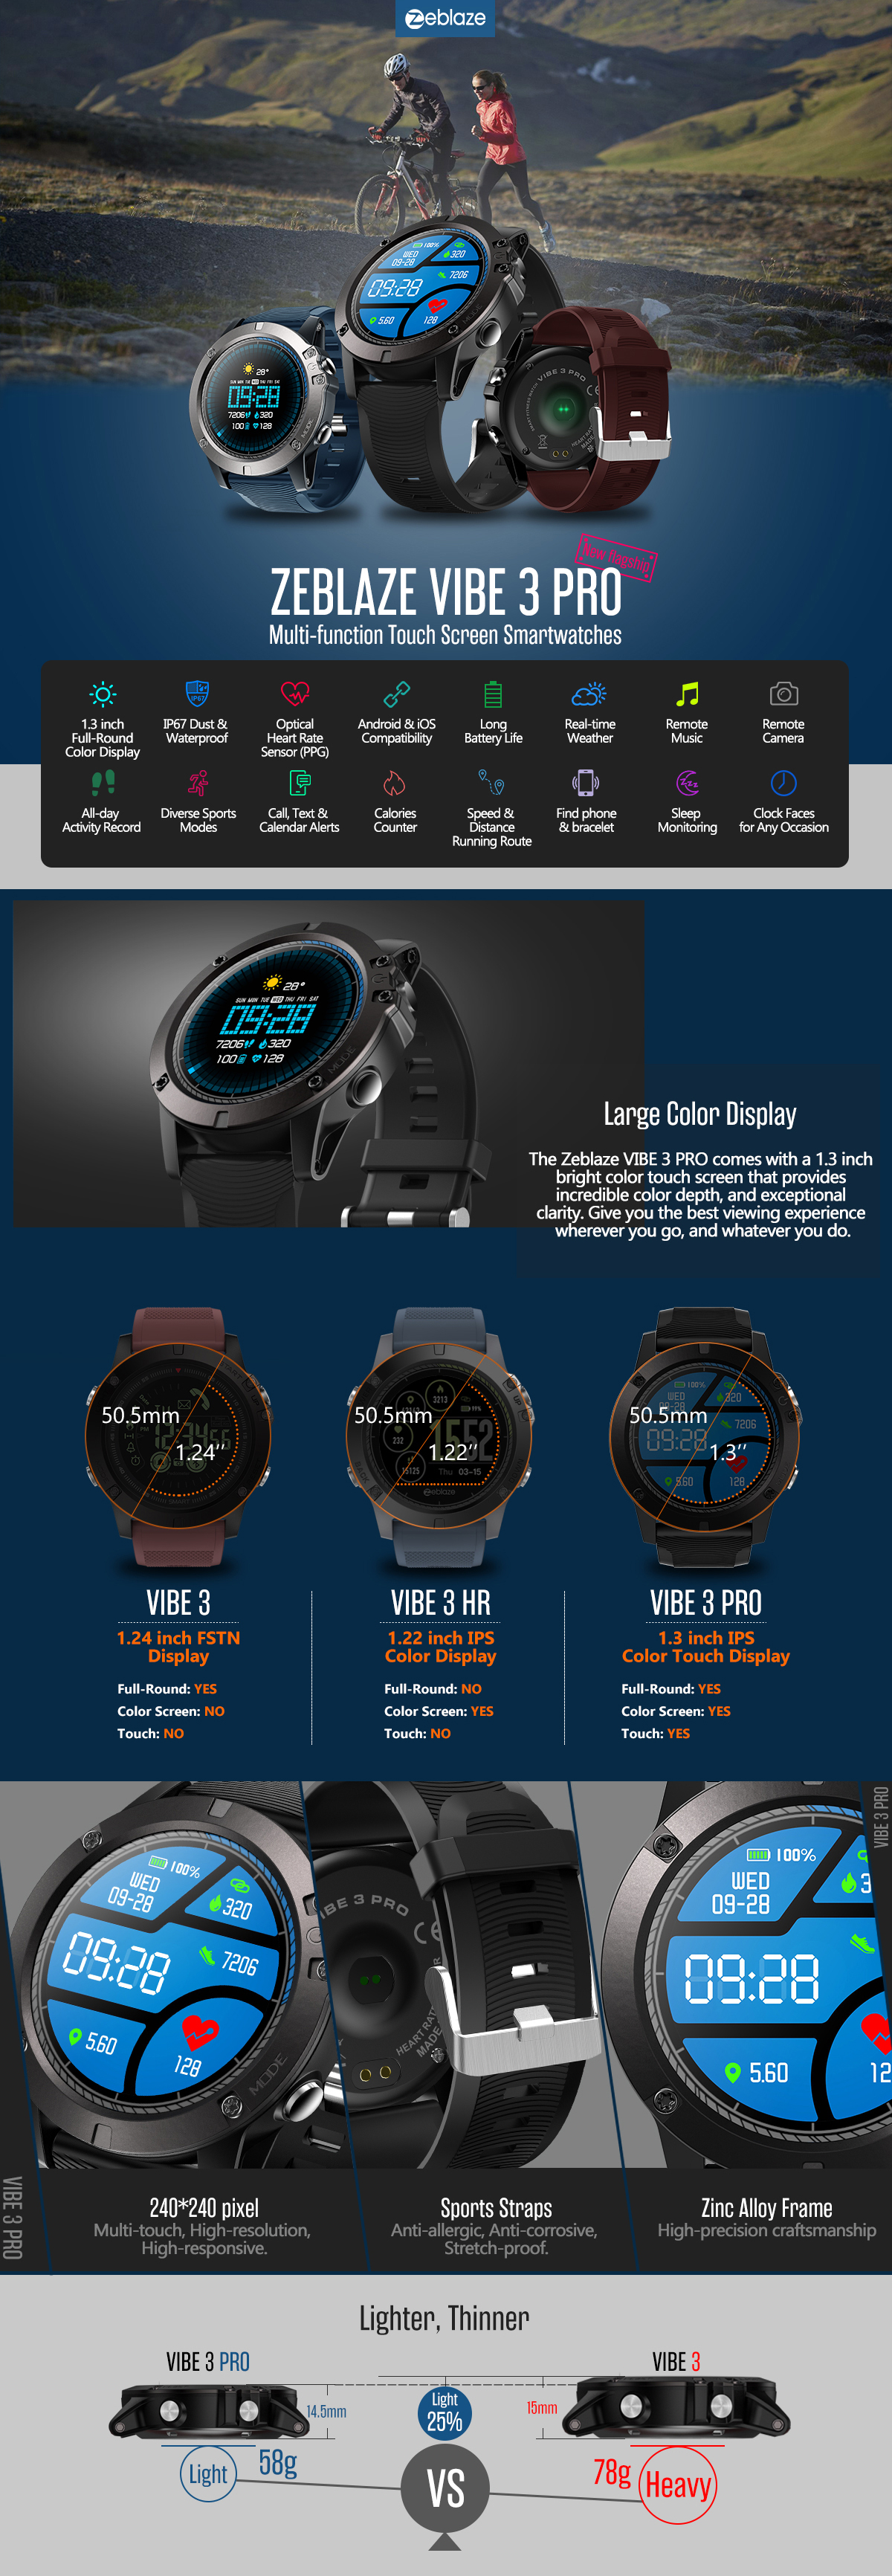 Zeblaze Vibe 3 Pro New Full Round Touch Real Time Weather Optical